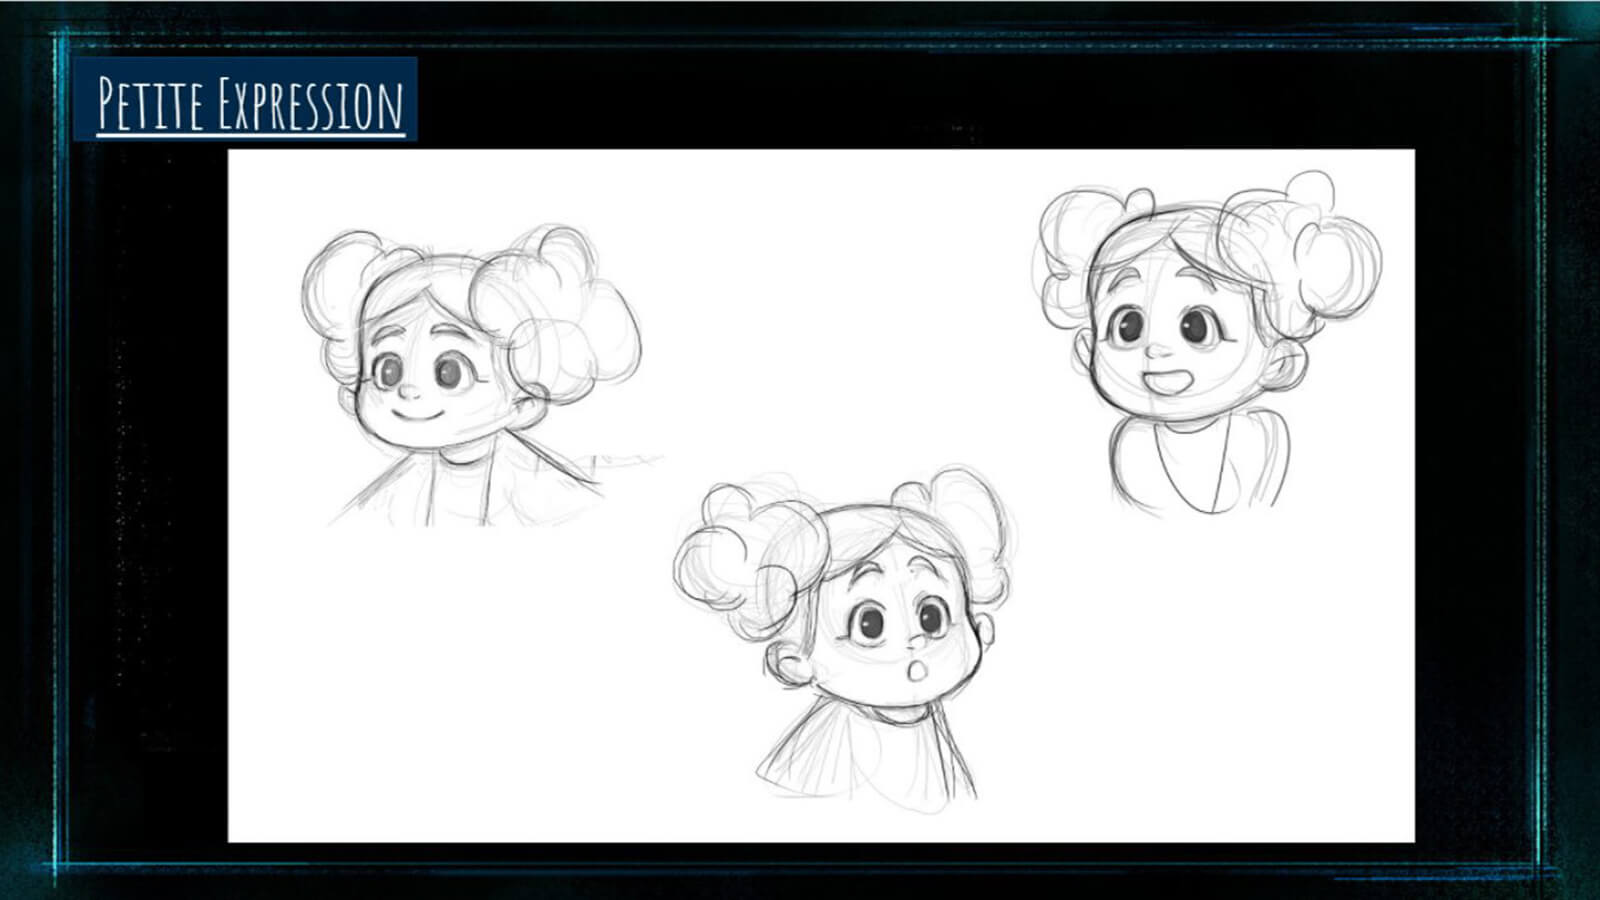 "A ""Character Expression"" sheet showing the film's character Petite making various facial expressions."